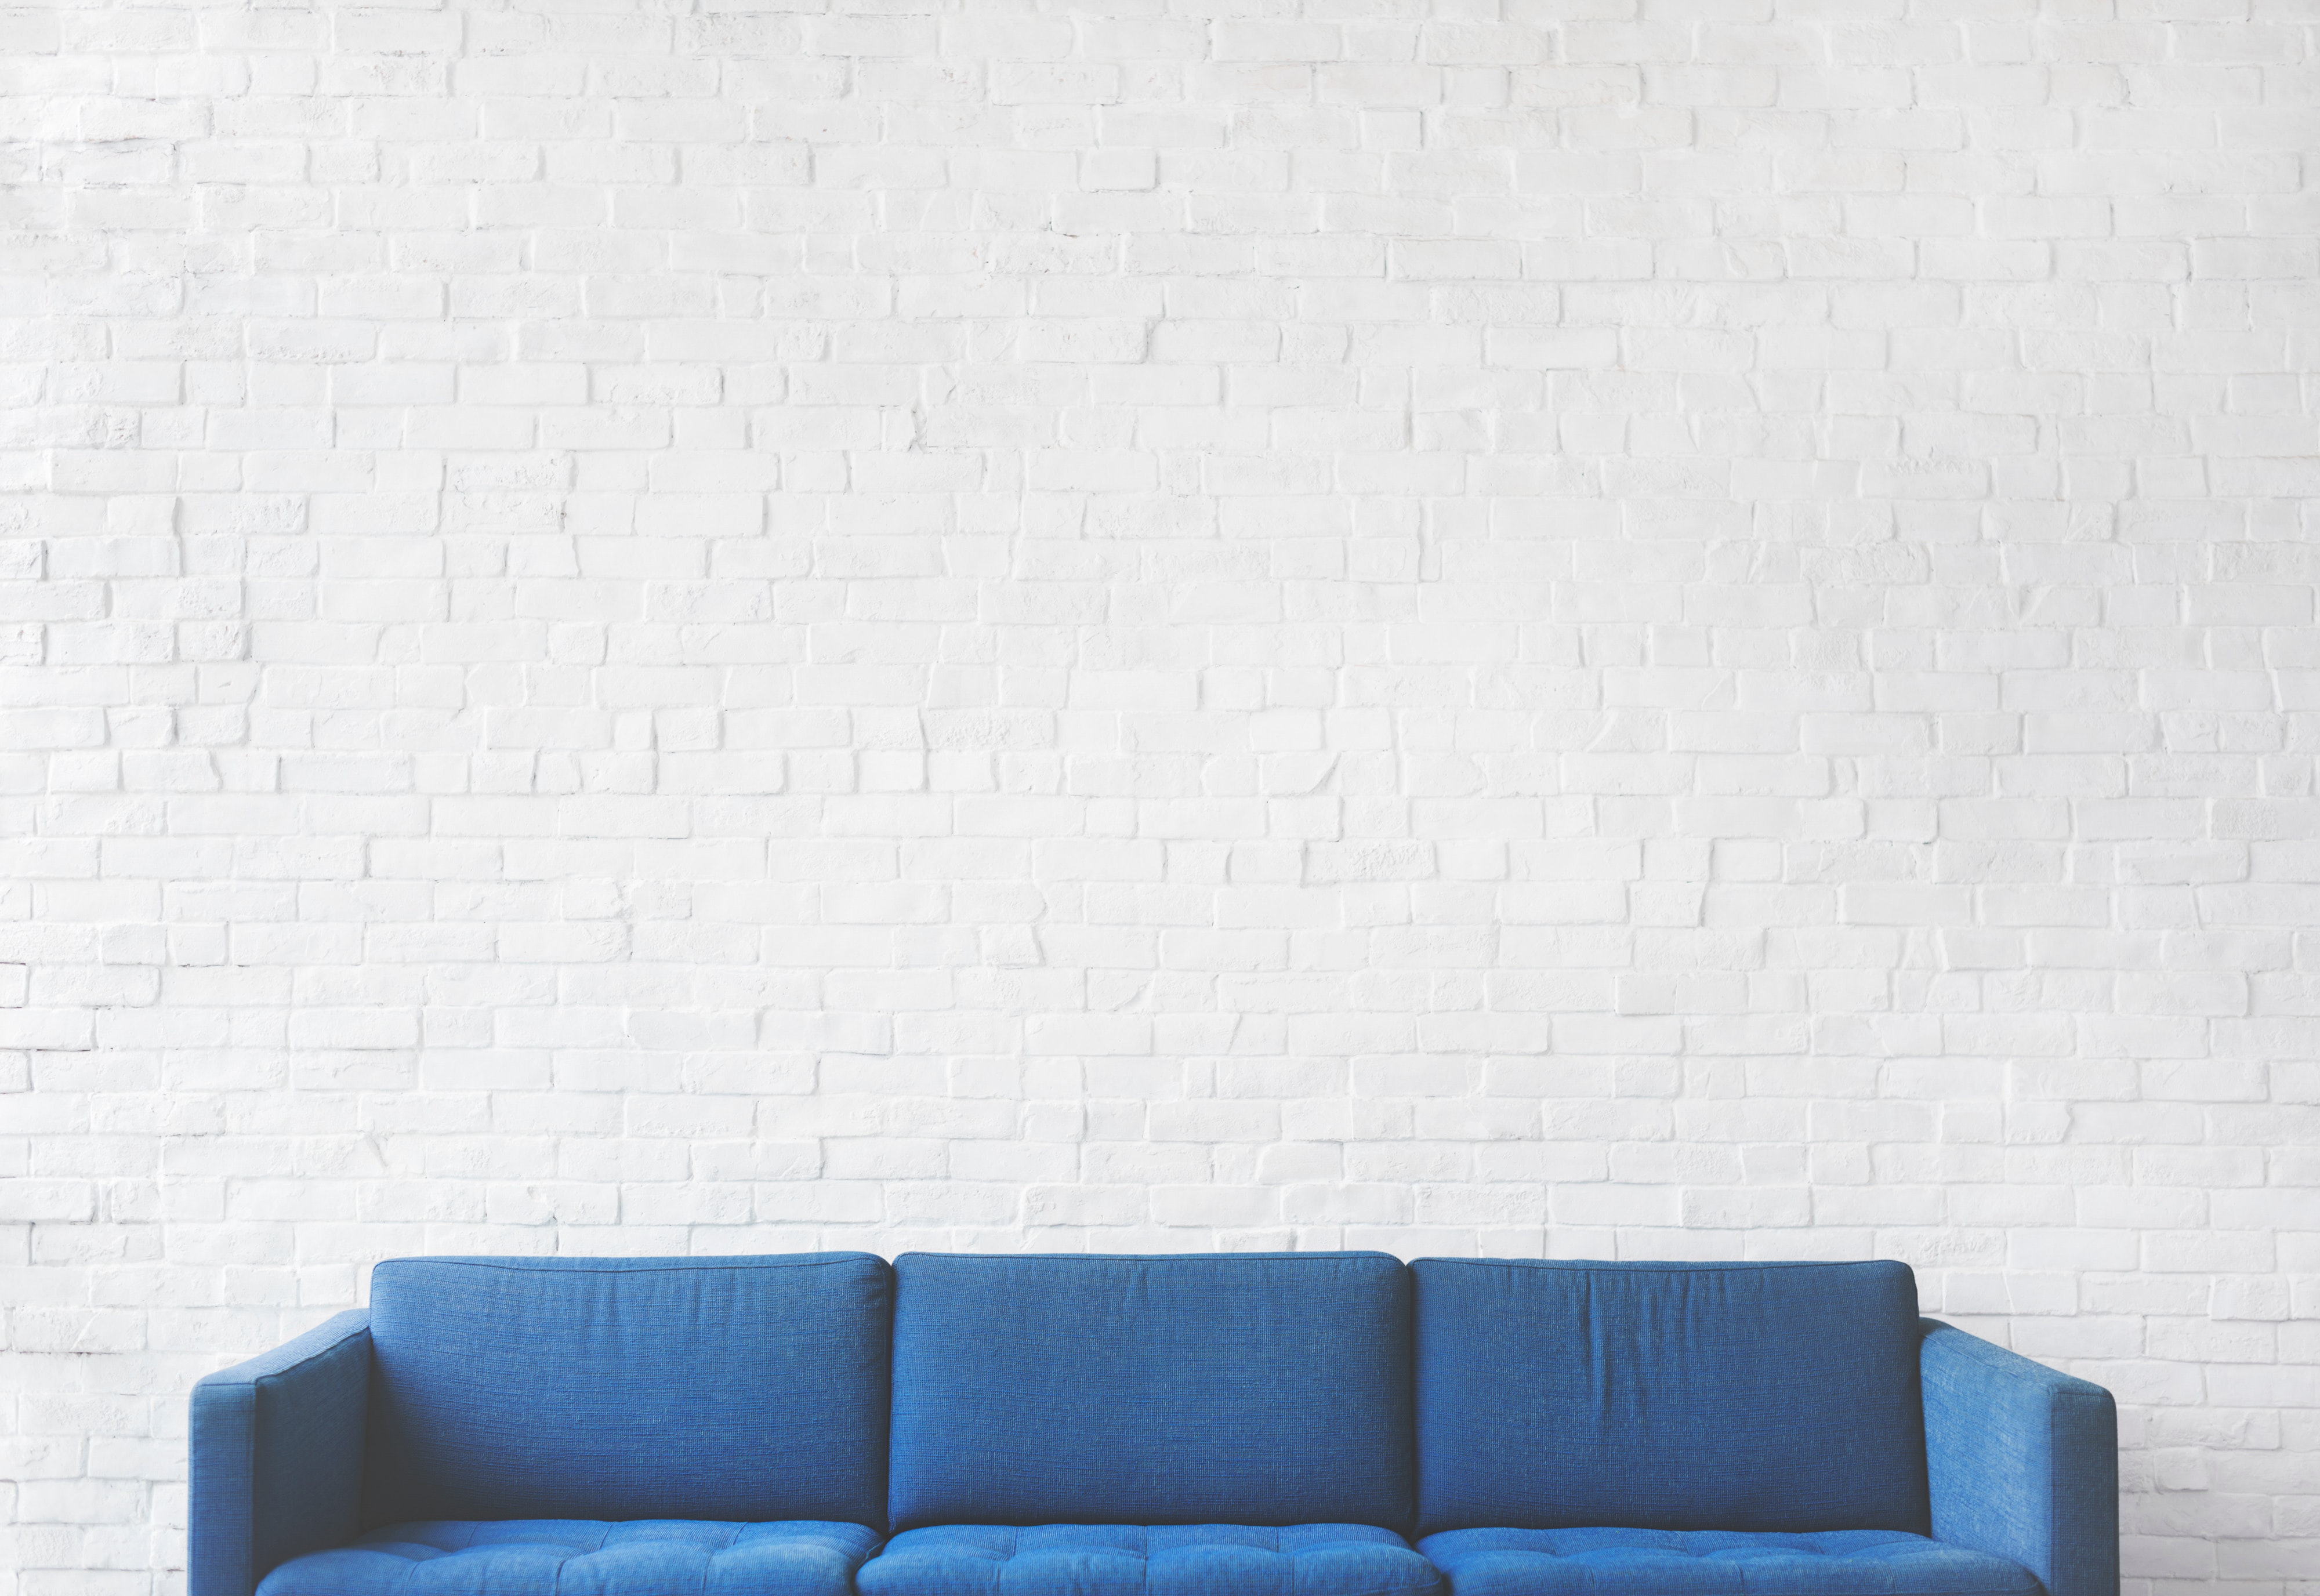 Saving Space With A Wall Bed